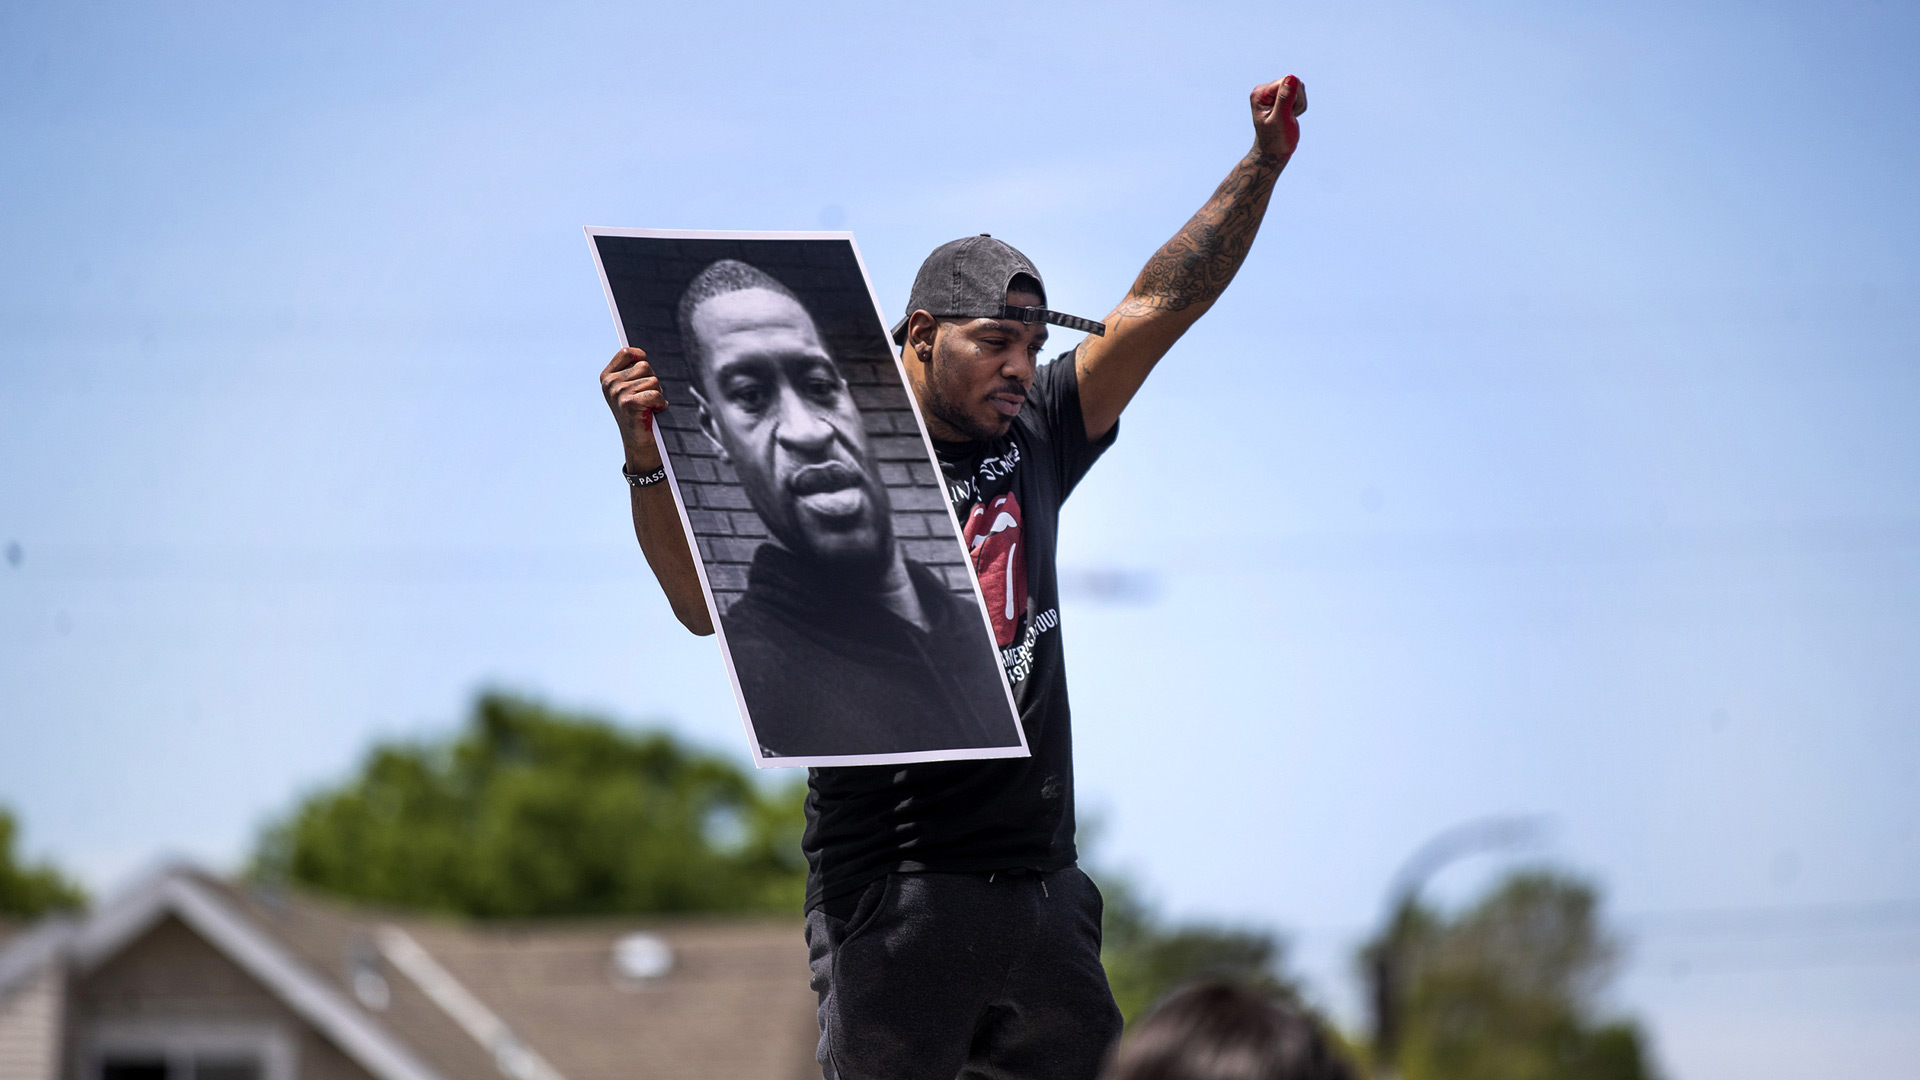 Tony L. Clark holds a photo of George Floyd outside a convenience store, Thursday, May 28, 2020, in Minneapolis. (Credit: Jerry Holt/Star Tribune/AP)